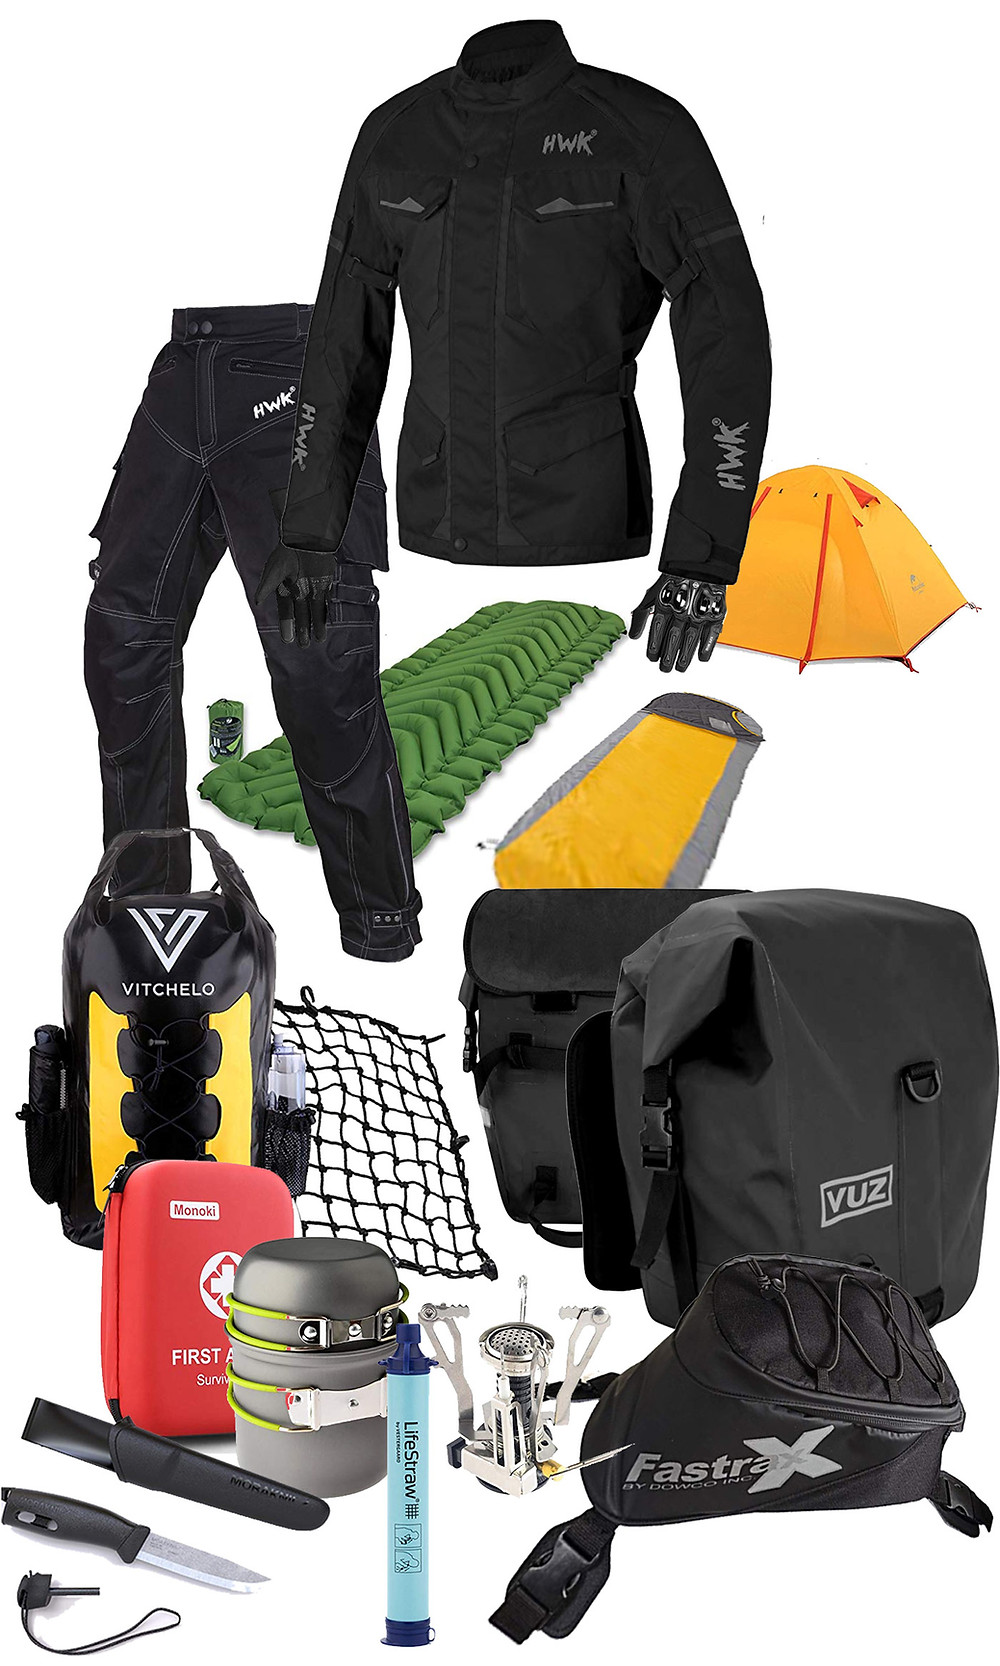 a collection of adventure gear comprising a complete starter kit for adv rand dual sport riding / motorcycle camping. all for under $600